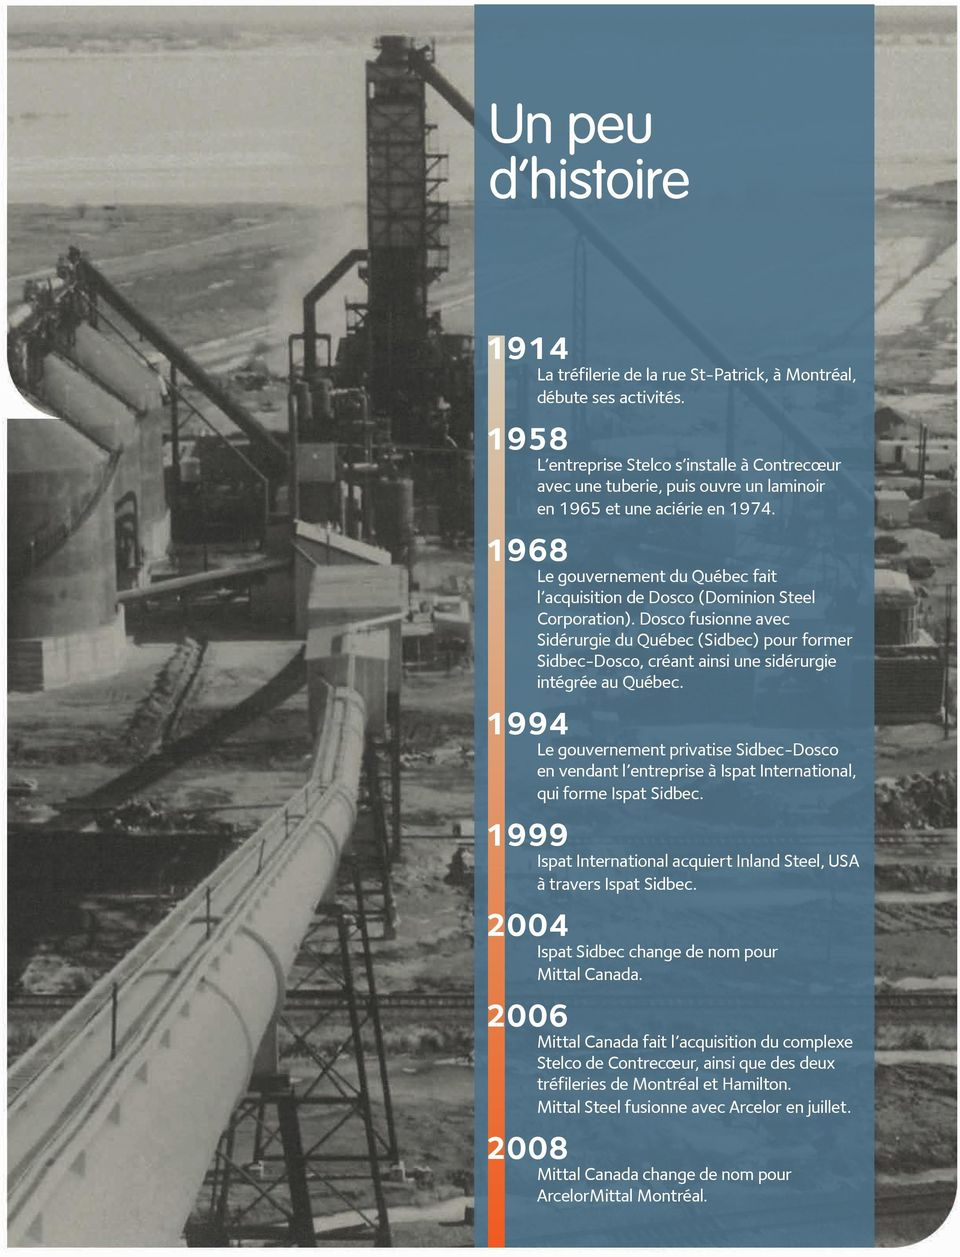 1968 Le gouvernement du Québec fait l acquisition de Dosco (Dominion Steel Corporation).